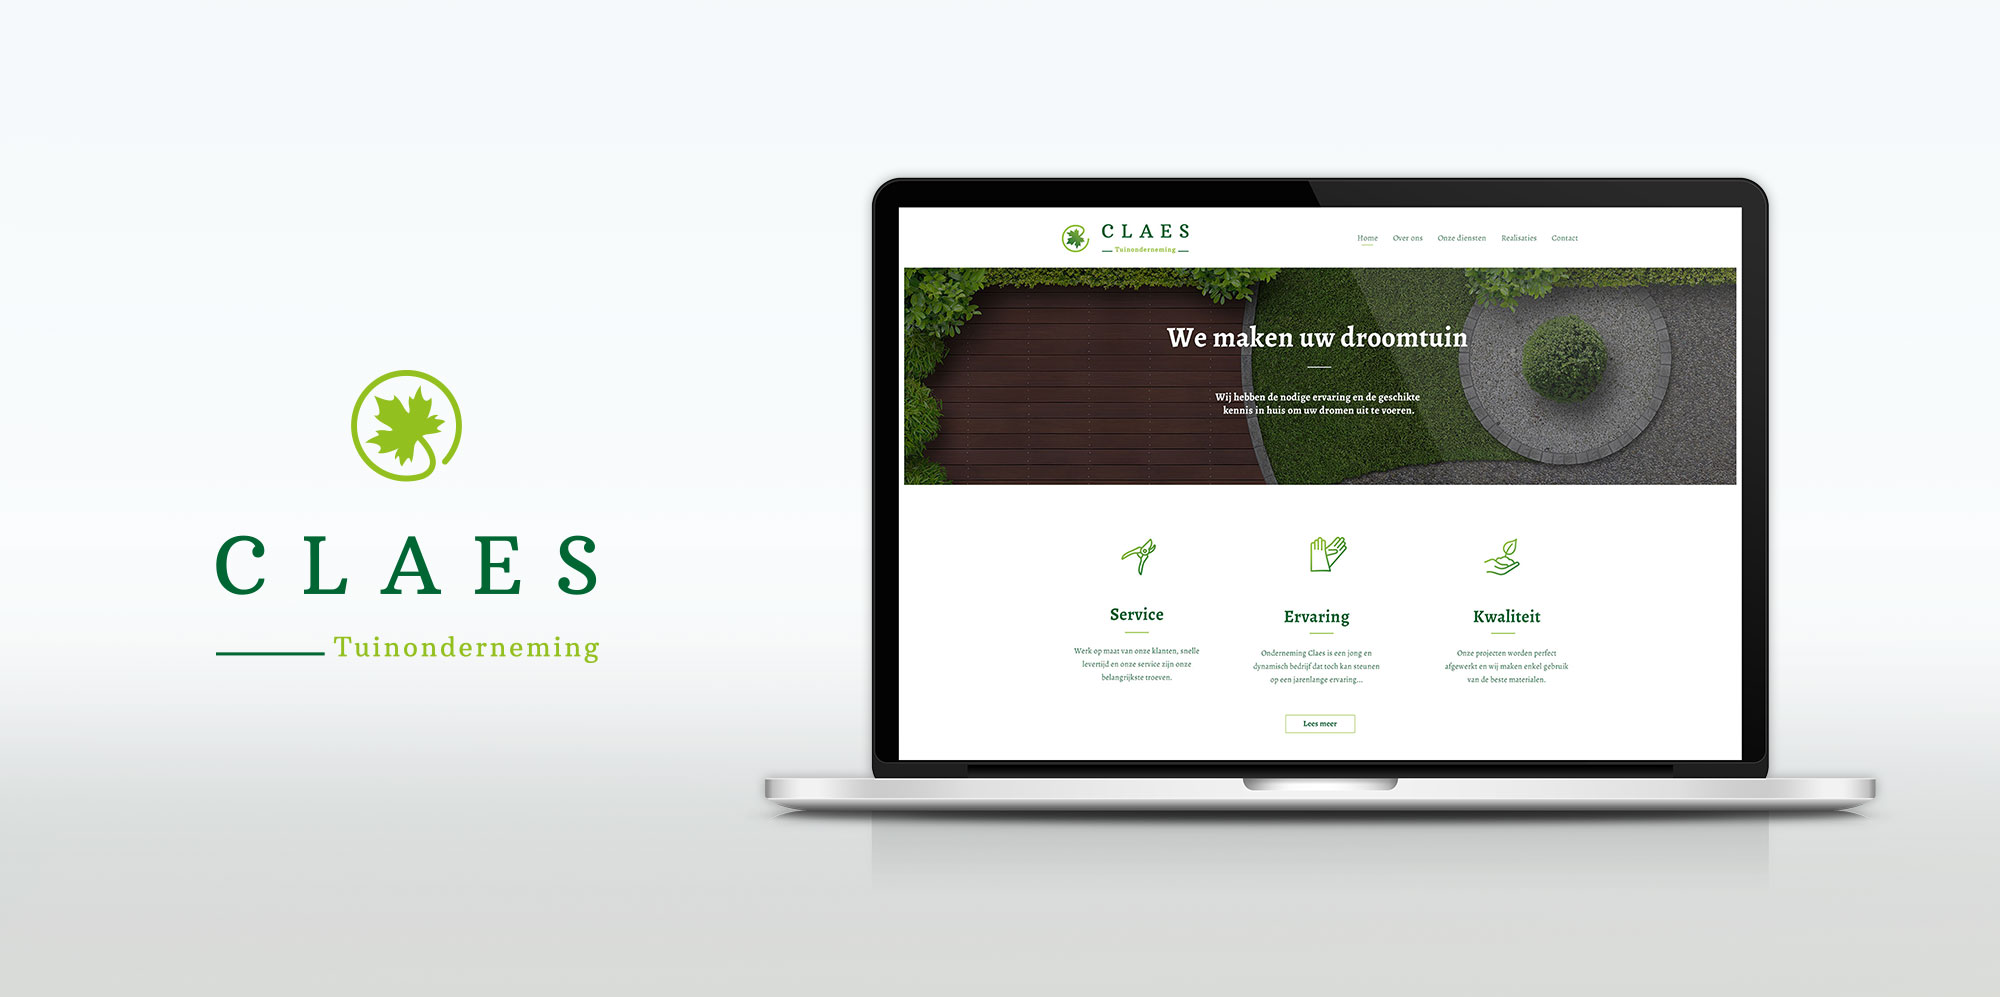 Claes tuinonderneming webdesign